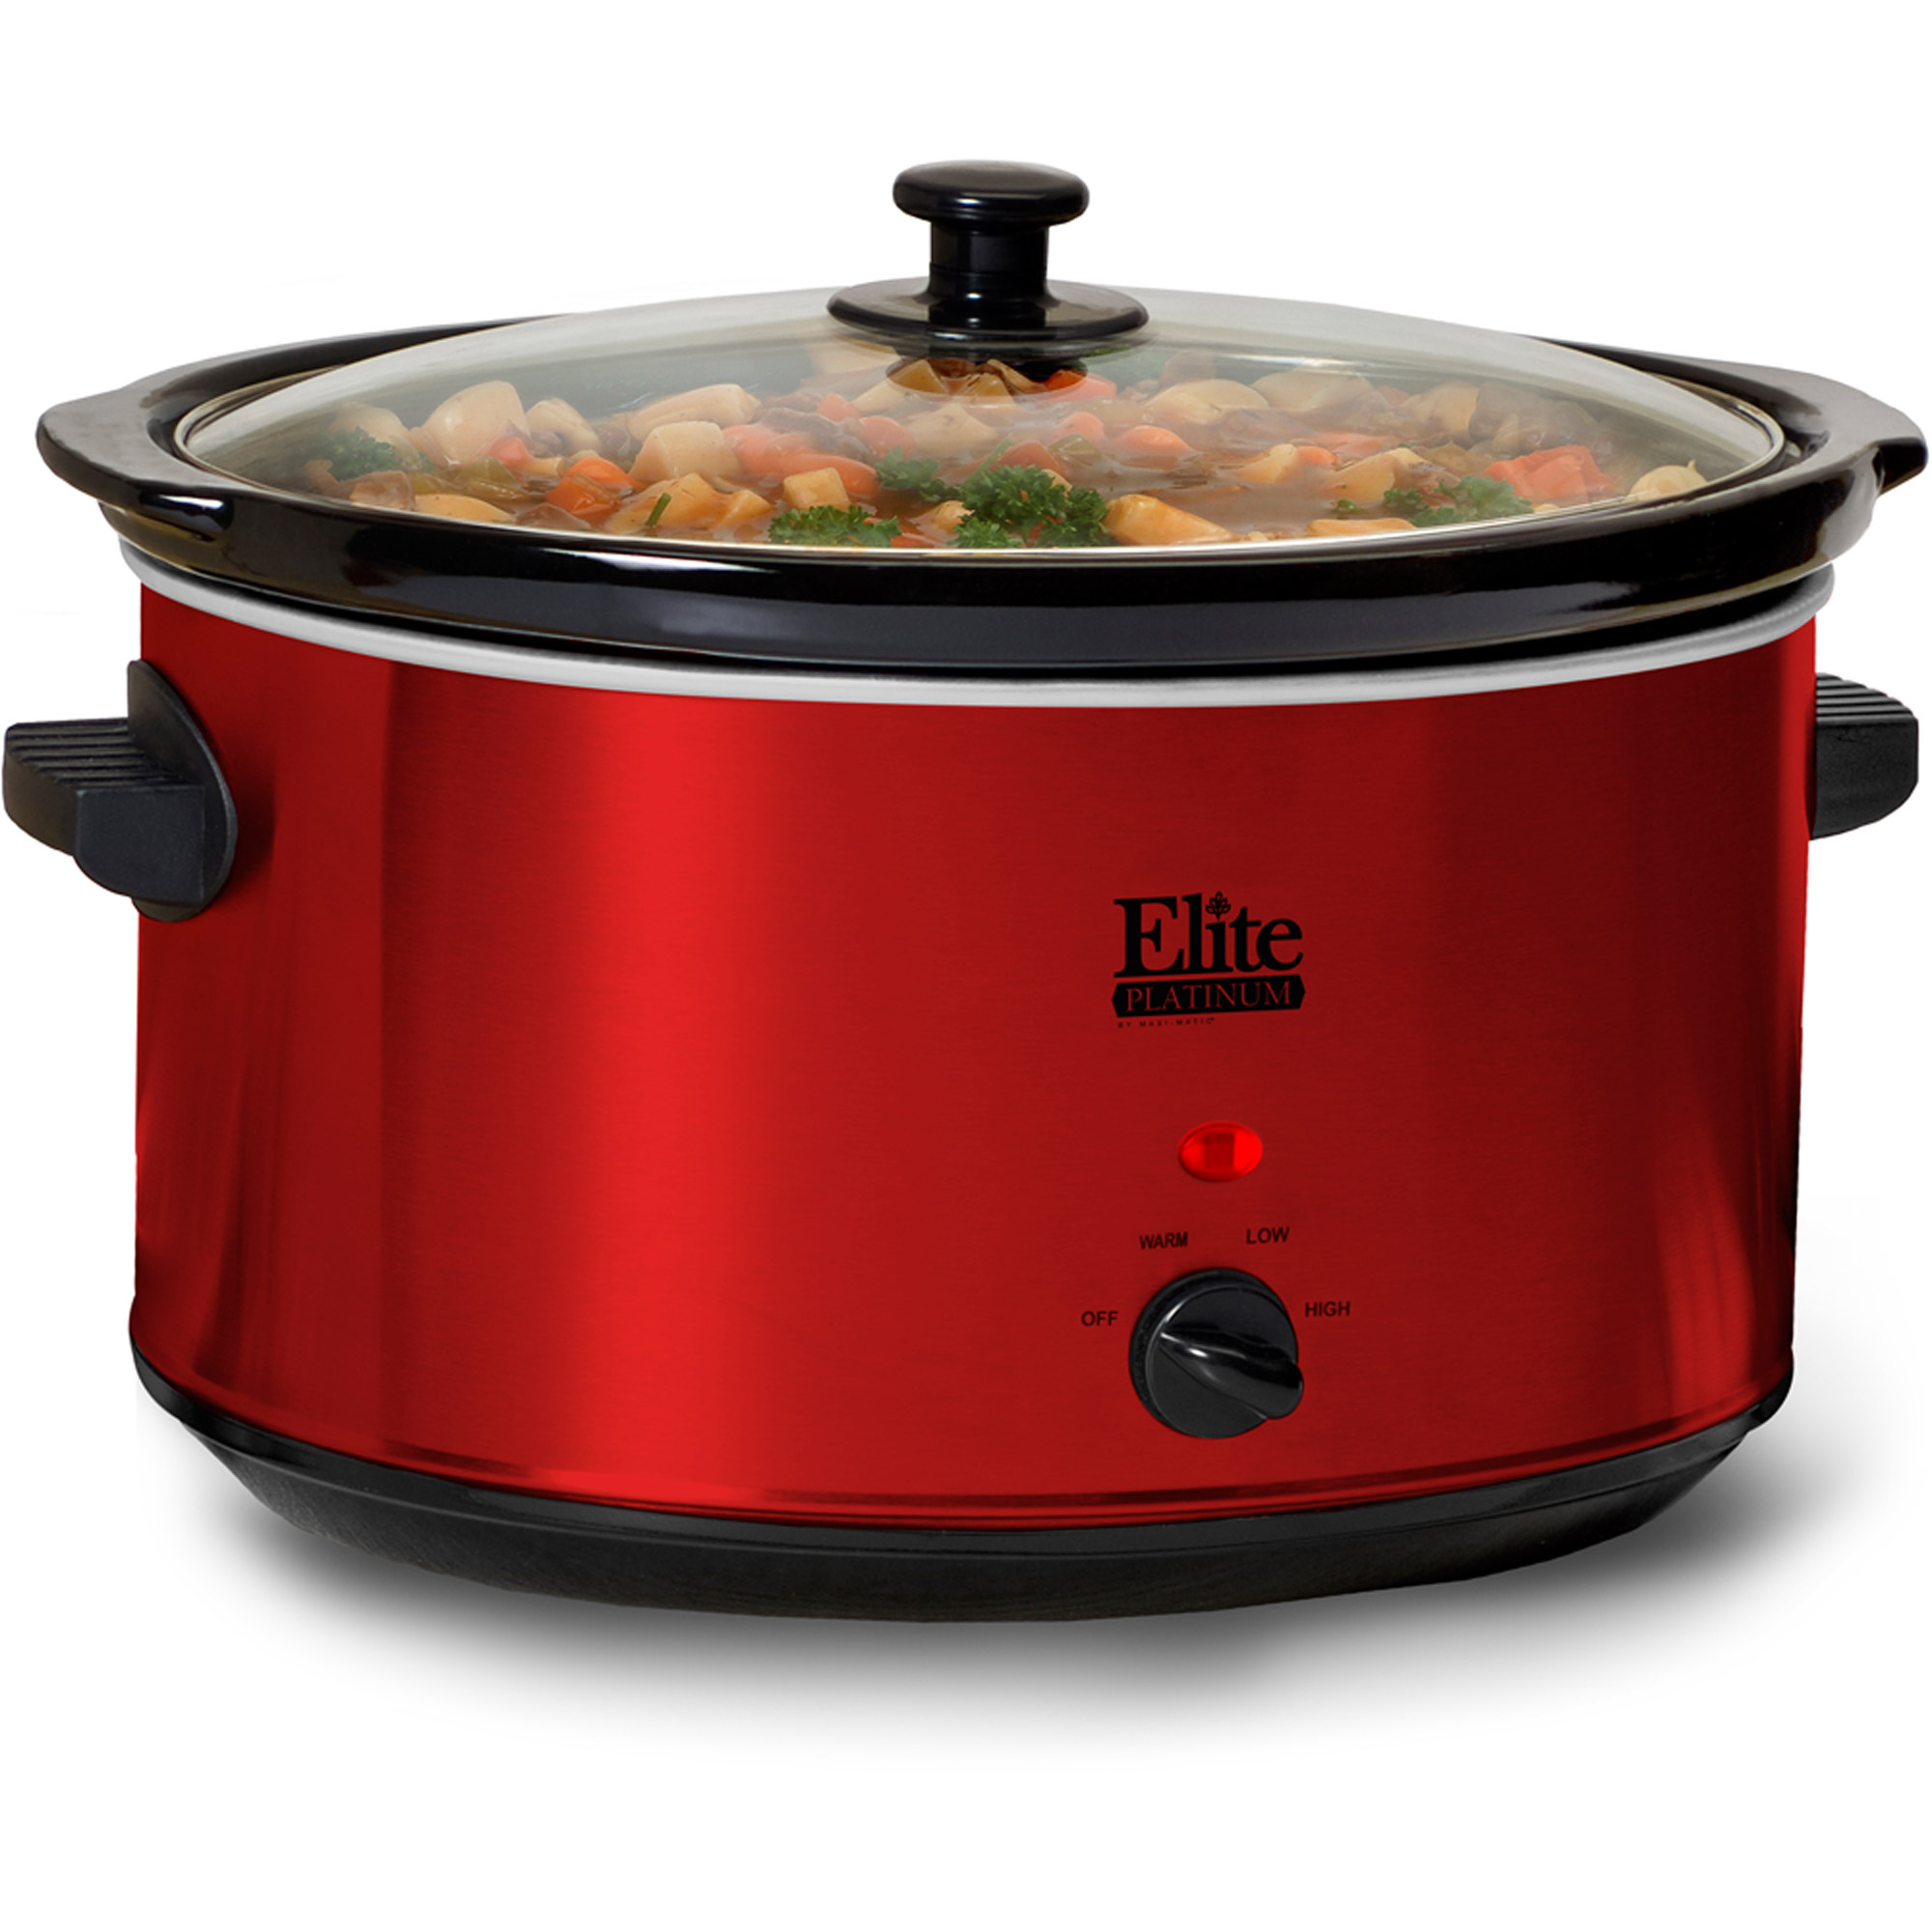 Elite Platinum MST900R 85 qt Stainless Steel Slow Cooker Red